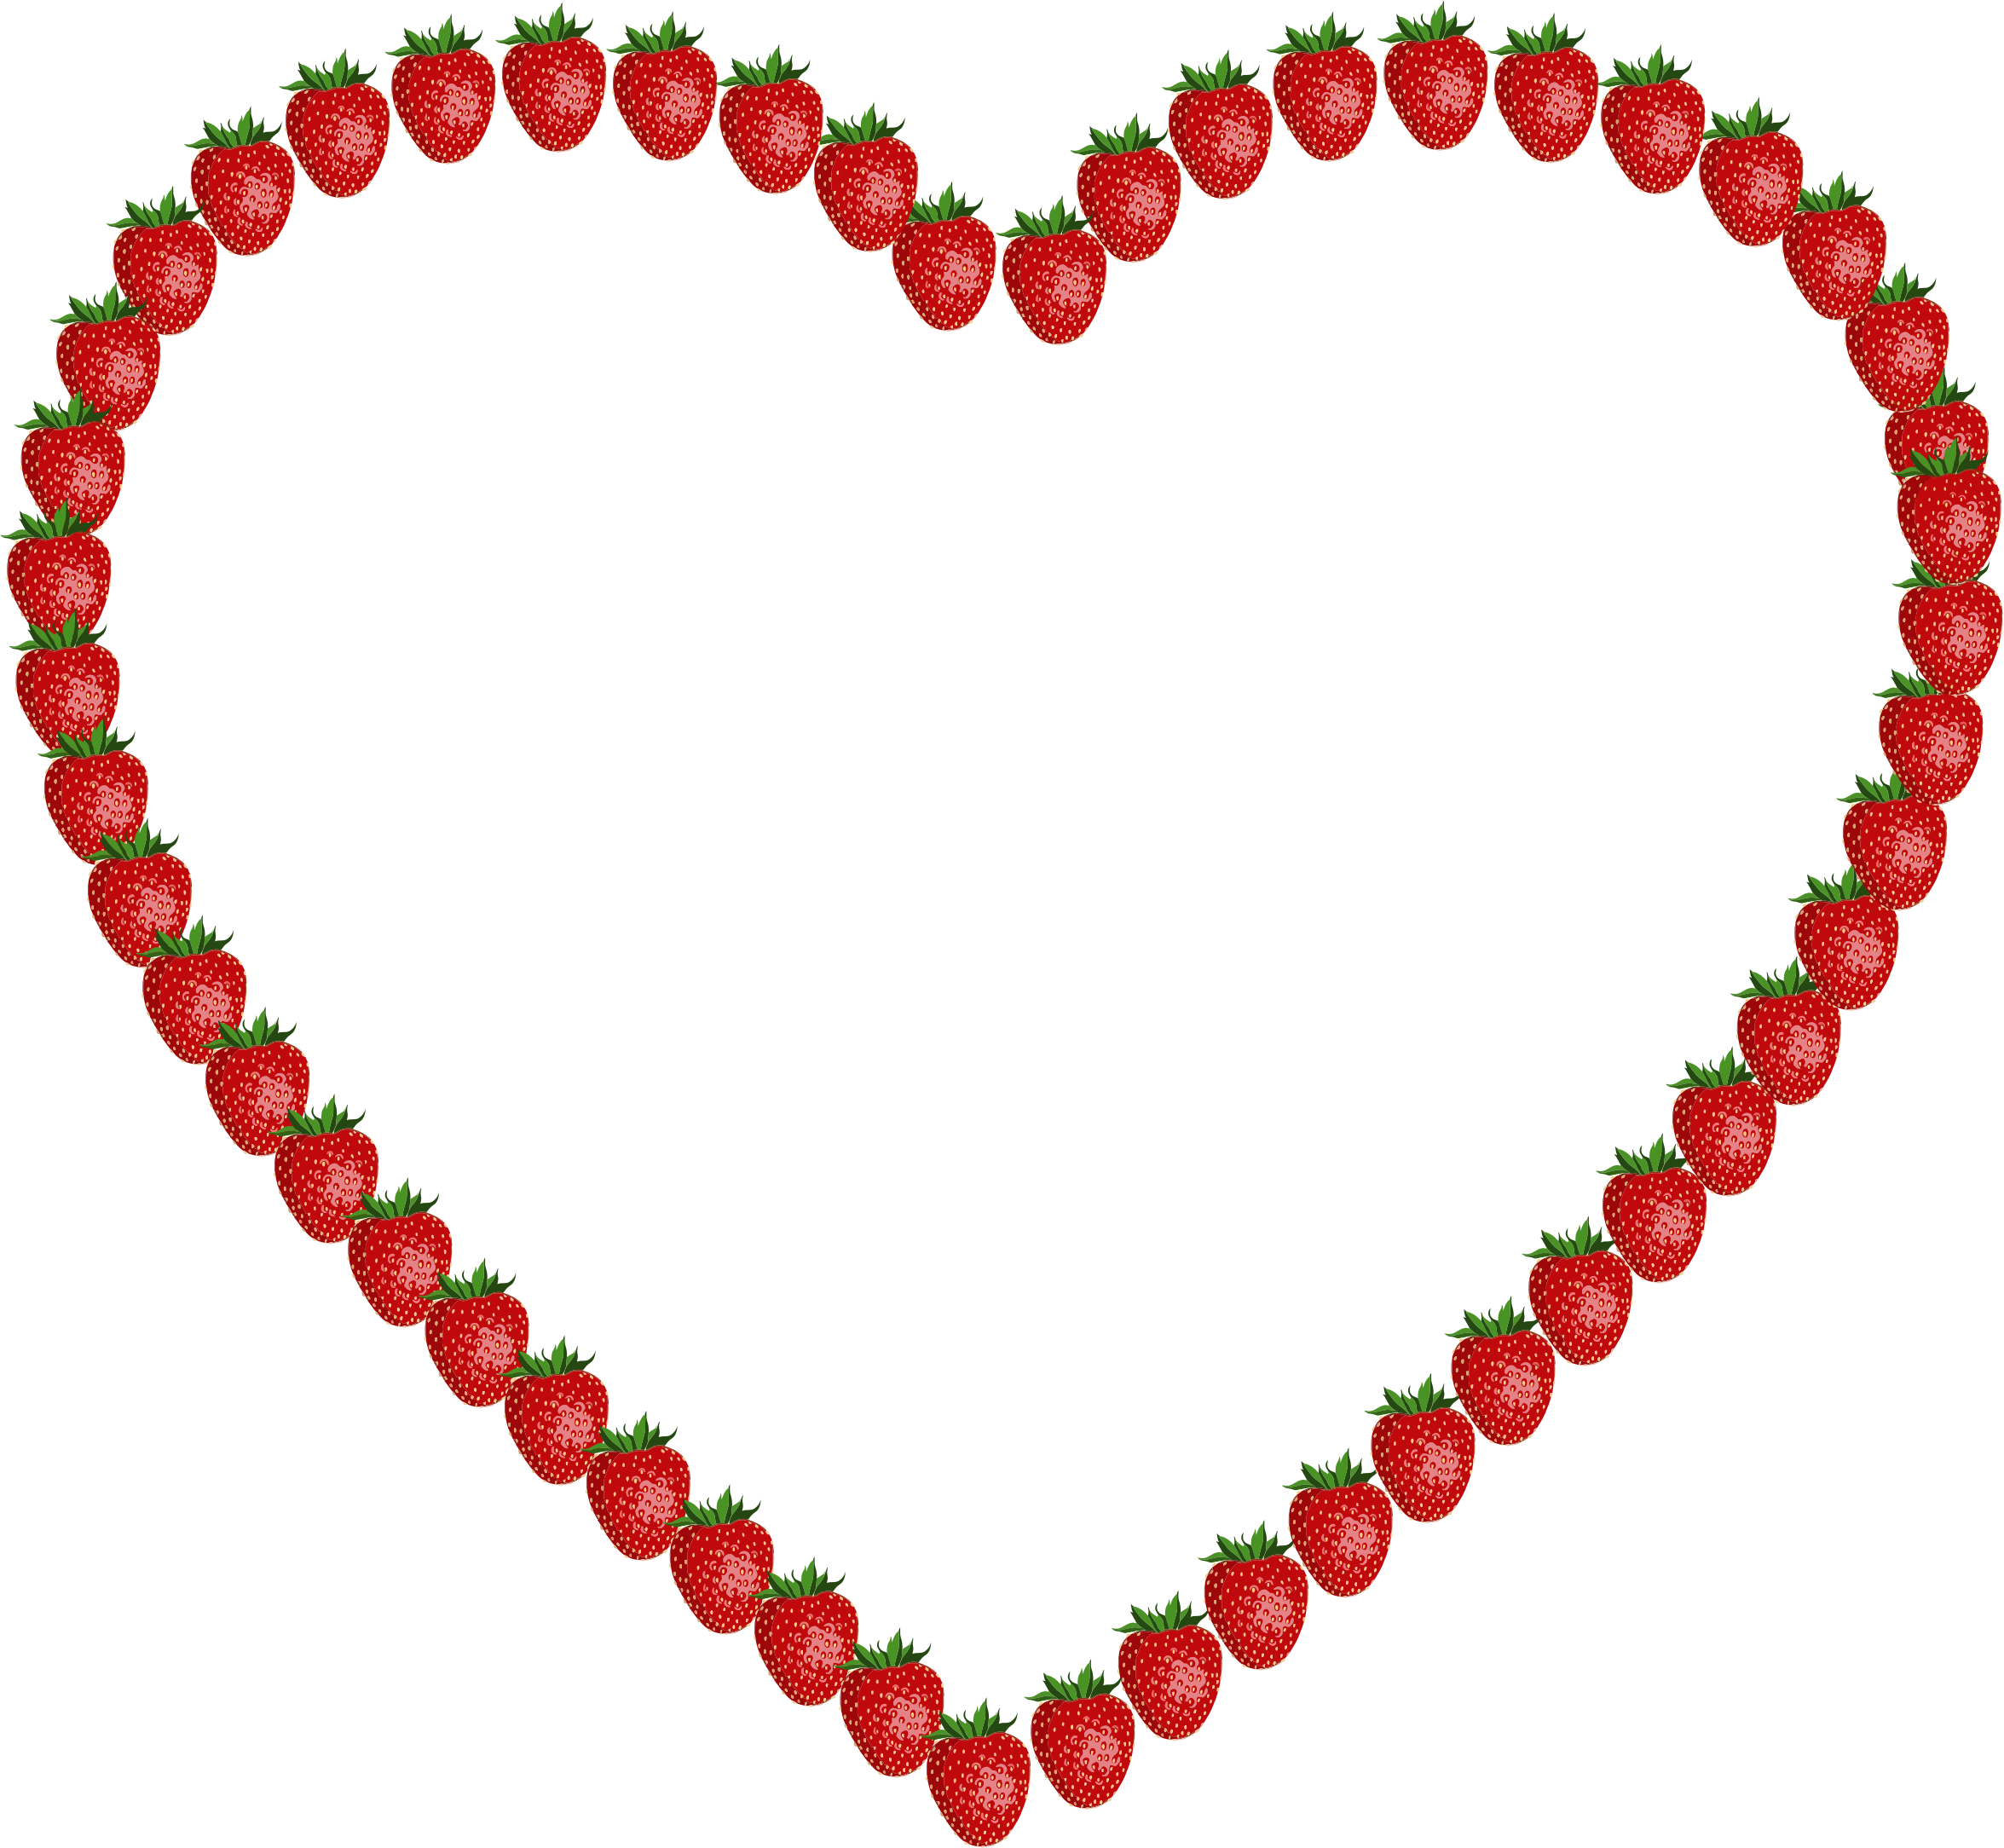 Strawberry big image png. Strawberries clipart heart